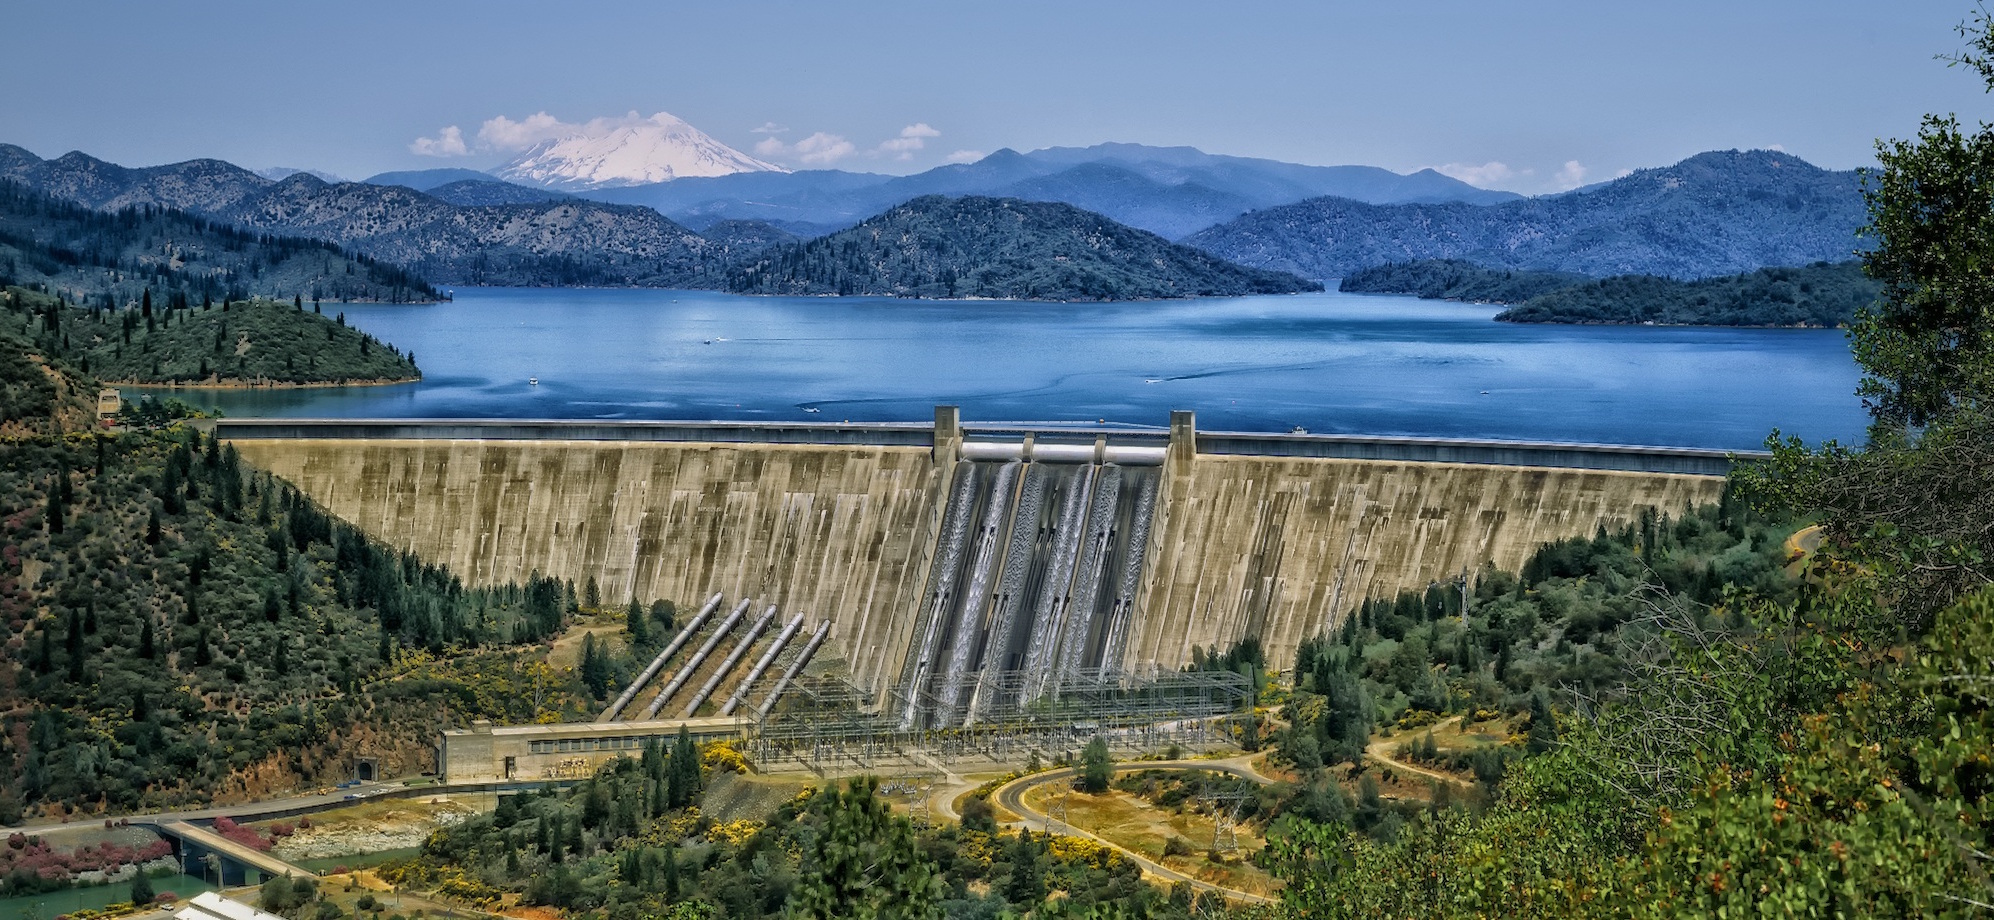 Managing freshwater resources under climate change